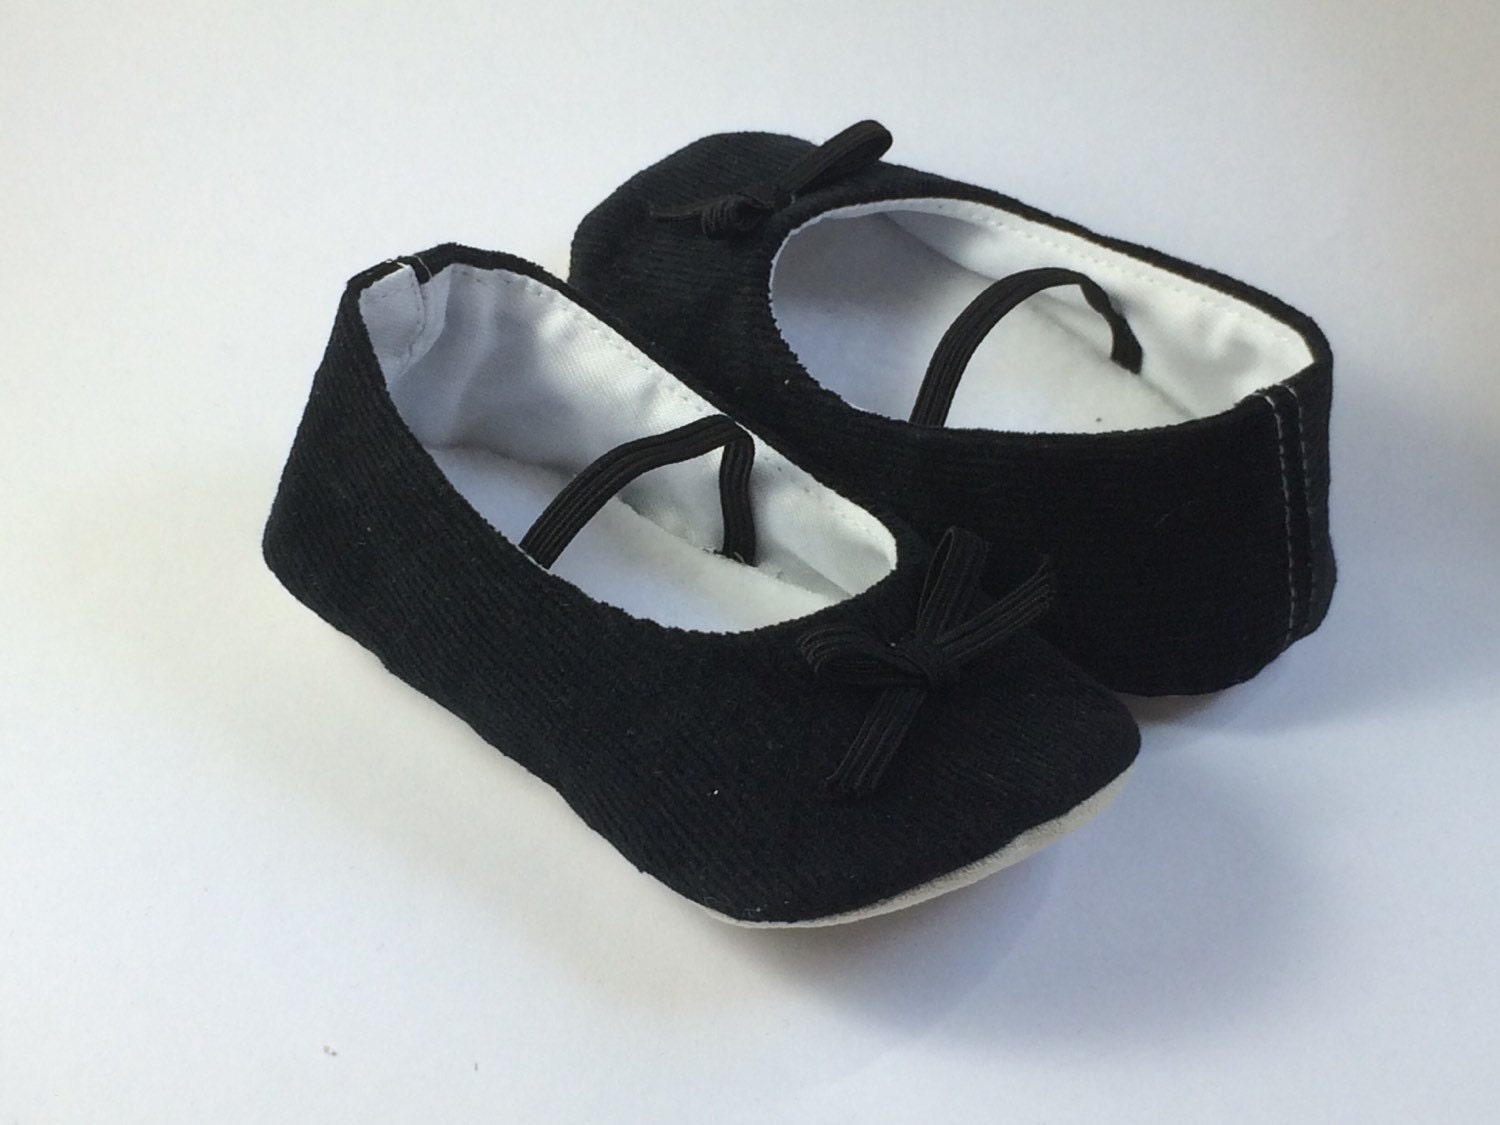 64db53abbf21d baby shoes, baby shoes girls, baby ballet flats, black baby shoes, girls  shoes, girls accessories, black shoe.